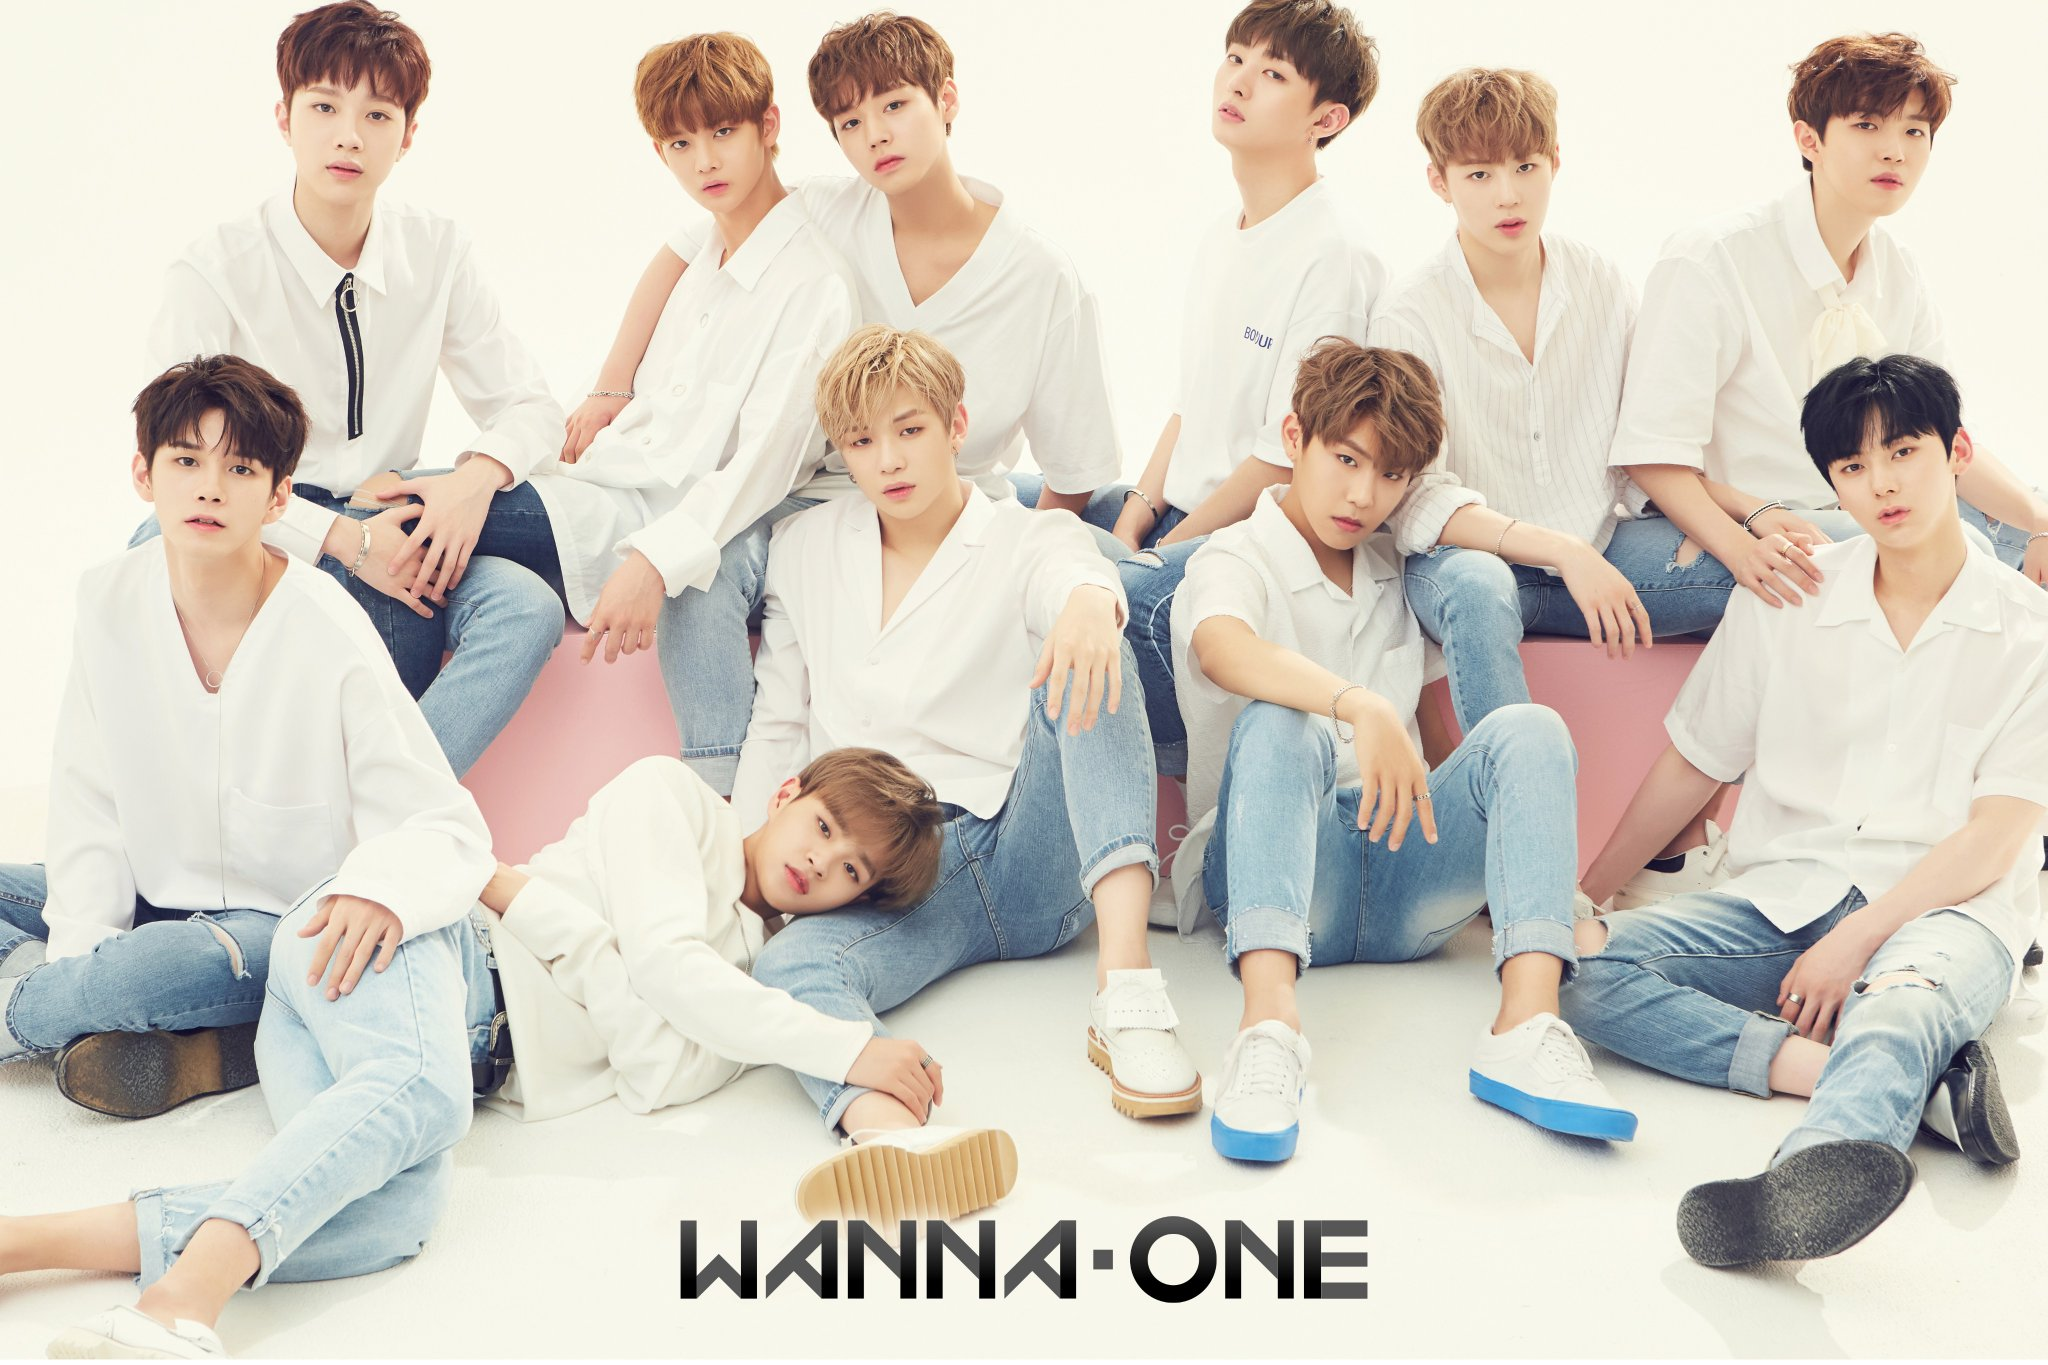 Wanna One Shows Off Chemistry In First Group Profile